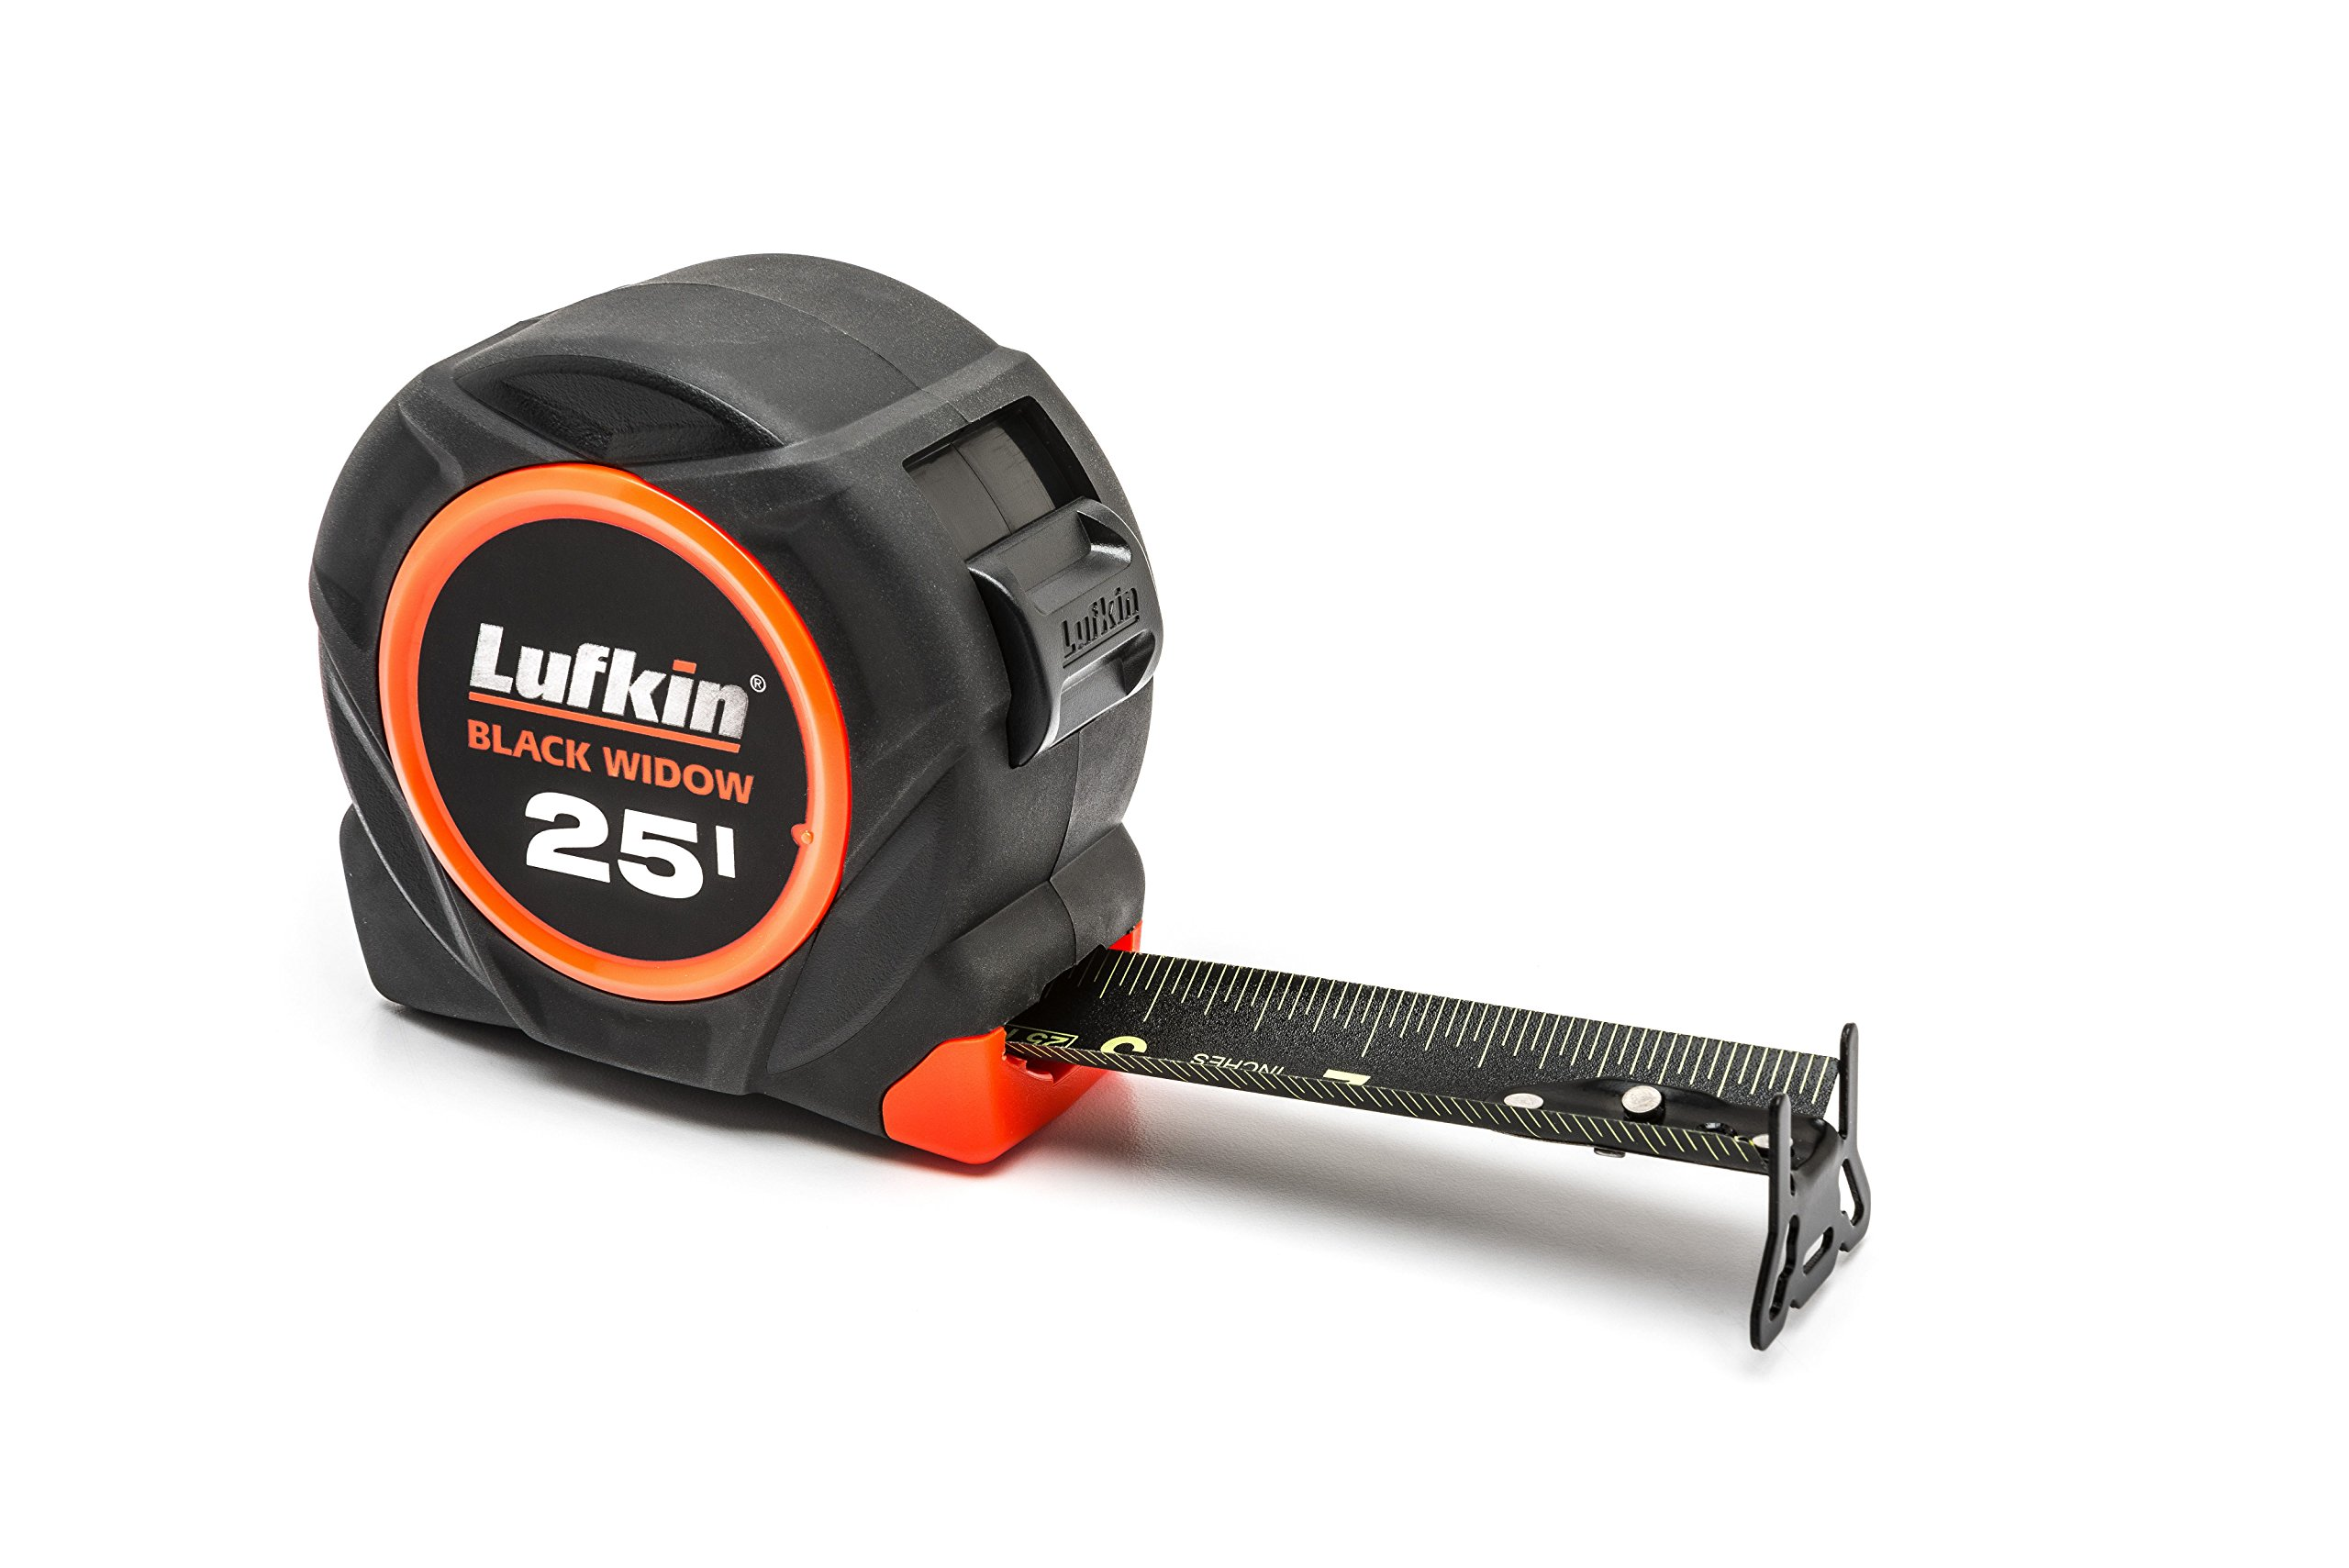 Lufkin L1025B Black Widow 25' Tape Measure Low Glare Matte Finish Hi-Visibility Blade Markings